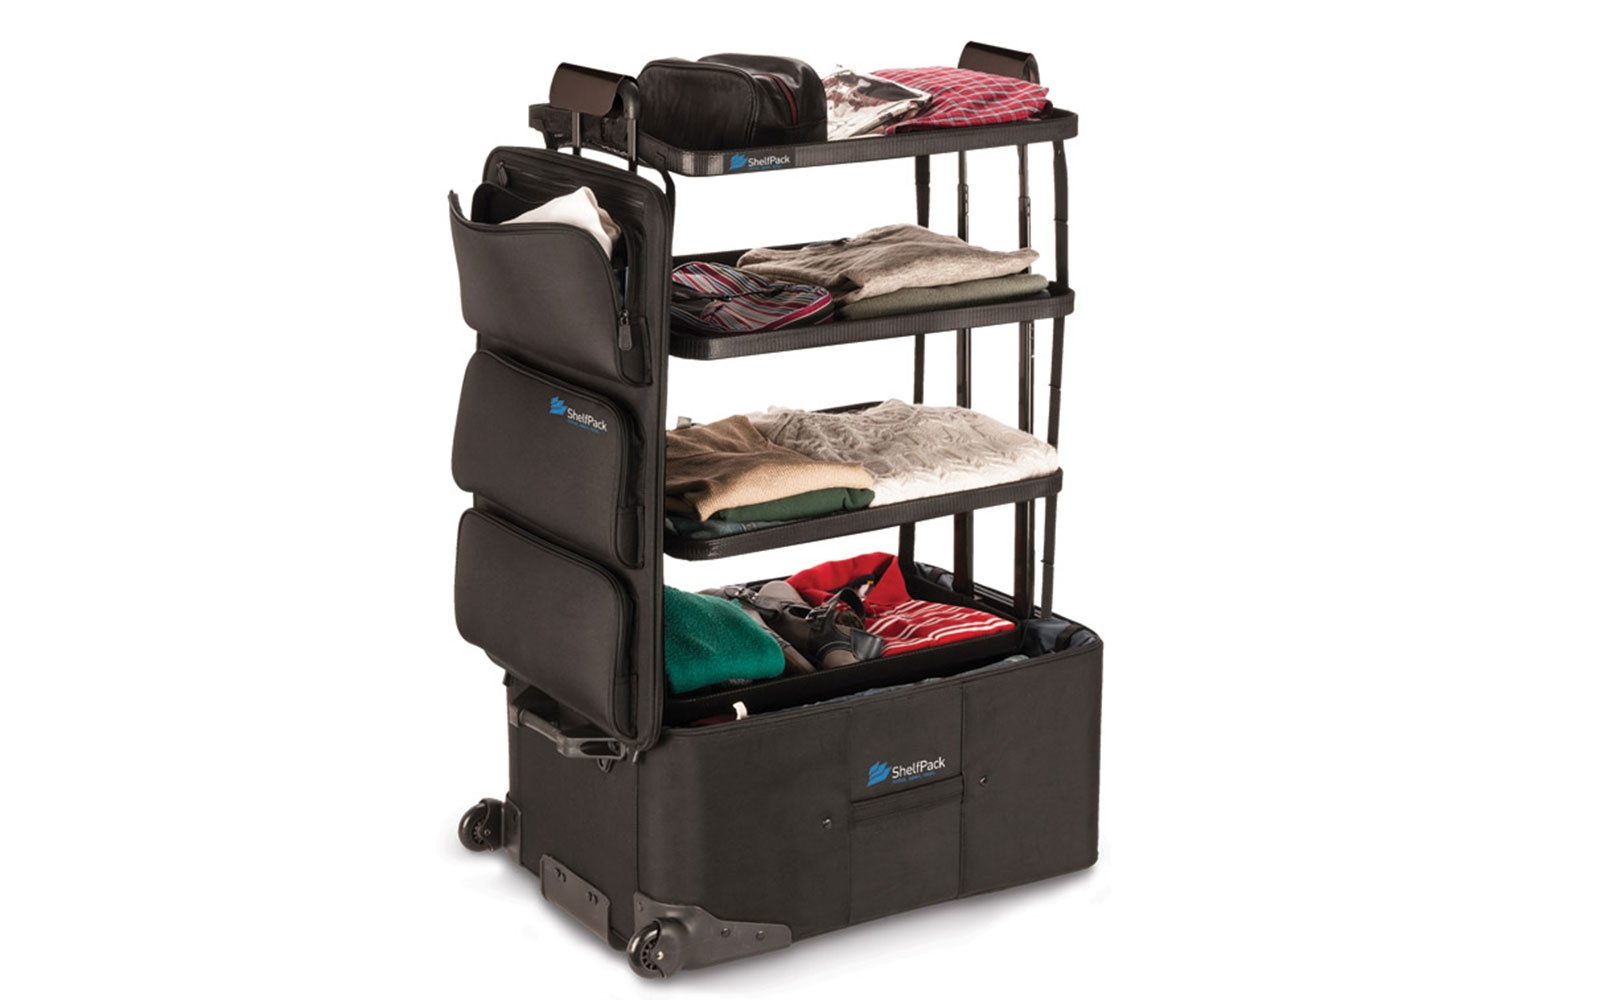 Game-Changer: Genius Suitcase Has Built-In Shelves